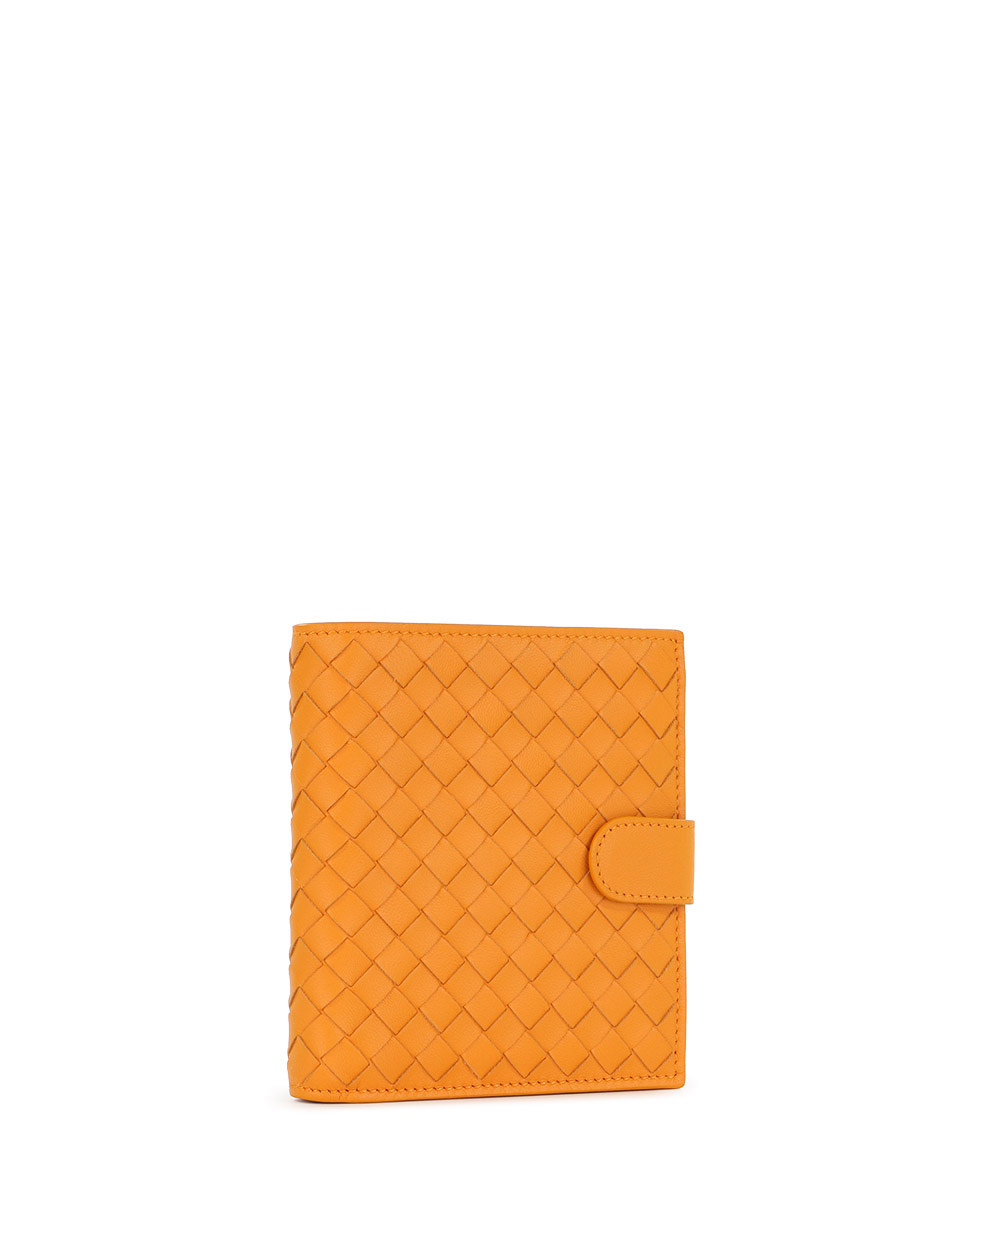 Woven Leather Short Wallet 3